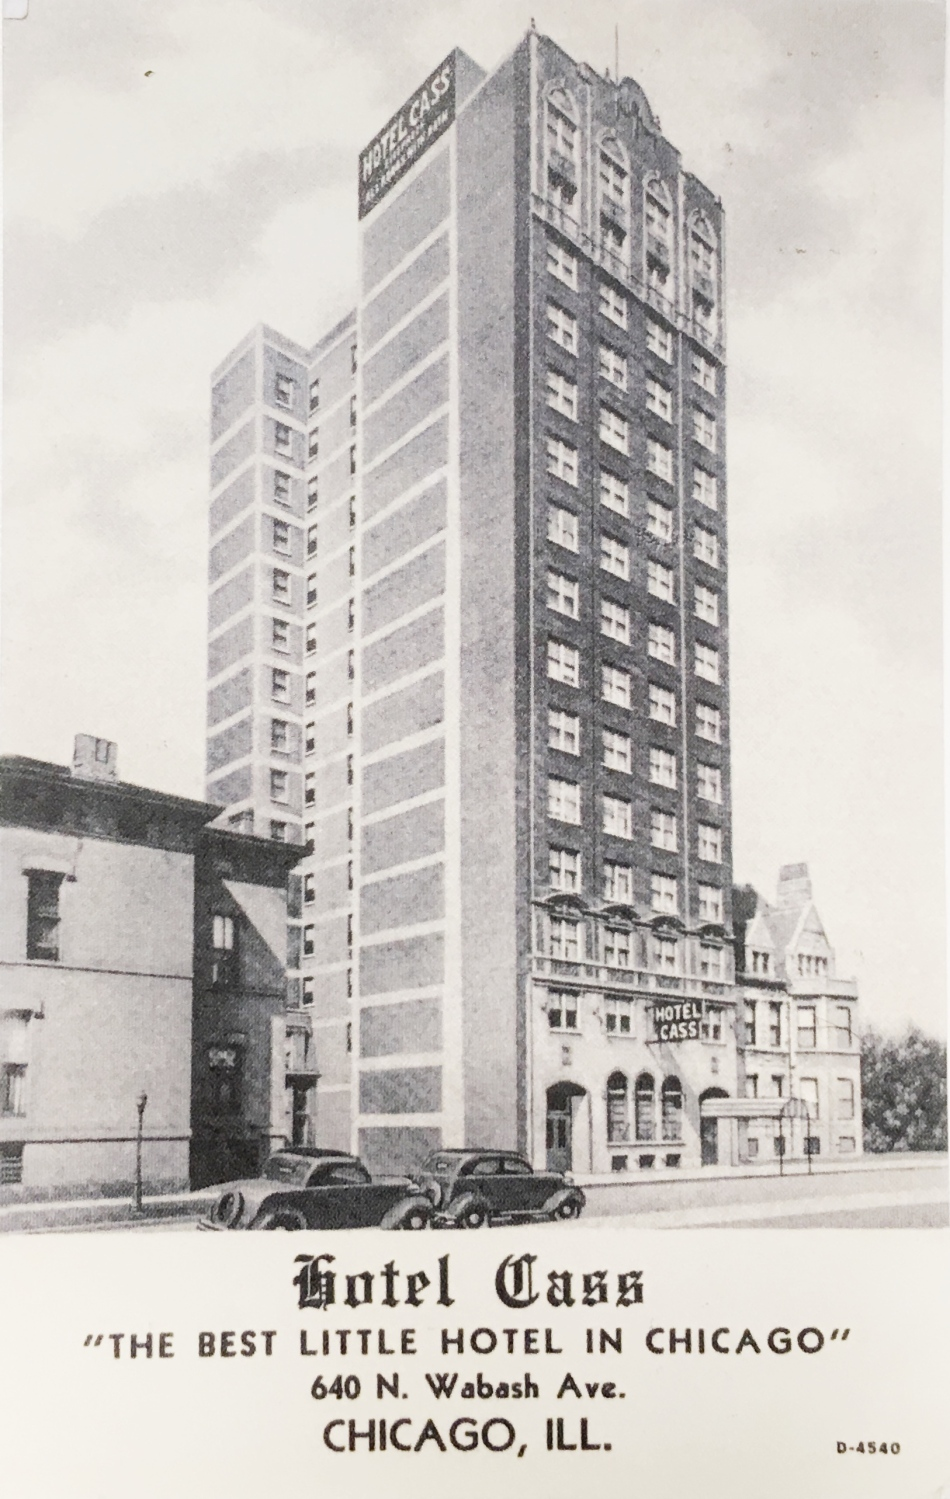 Chicago hotel- The Hotel Cass